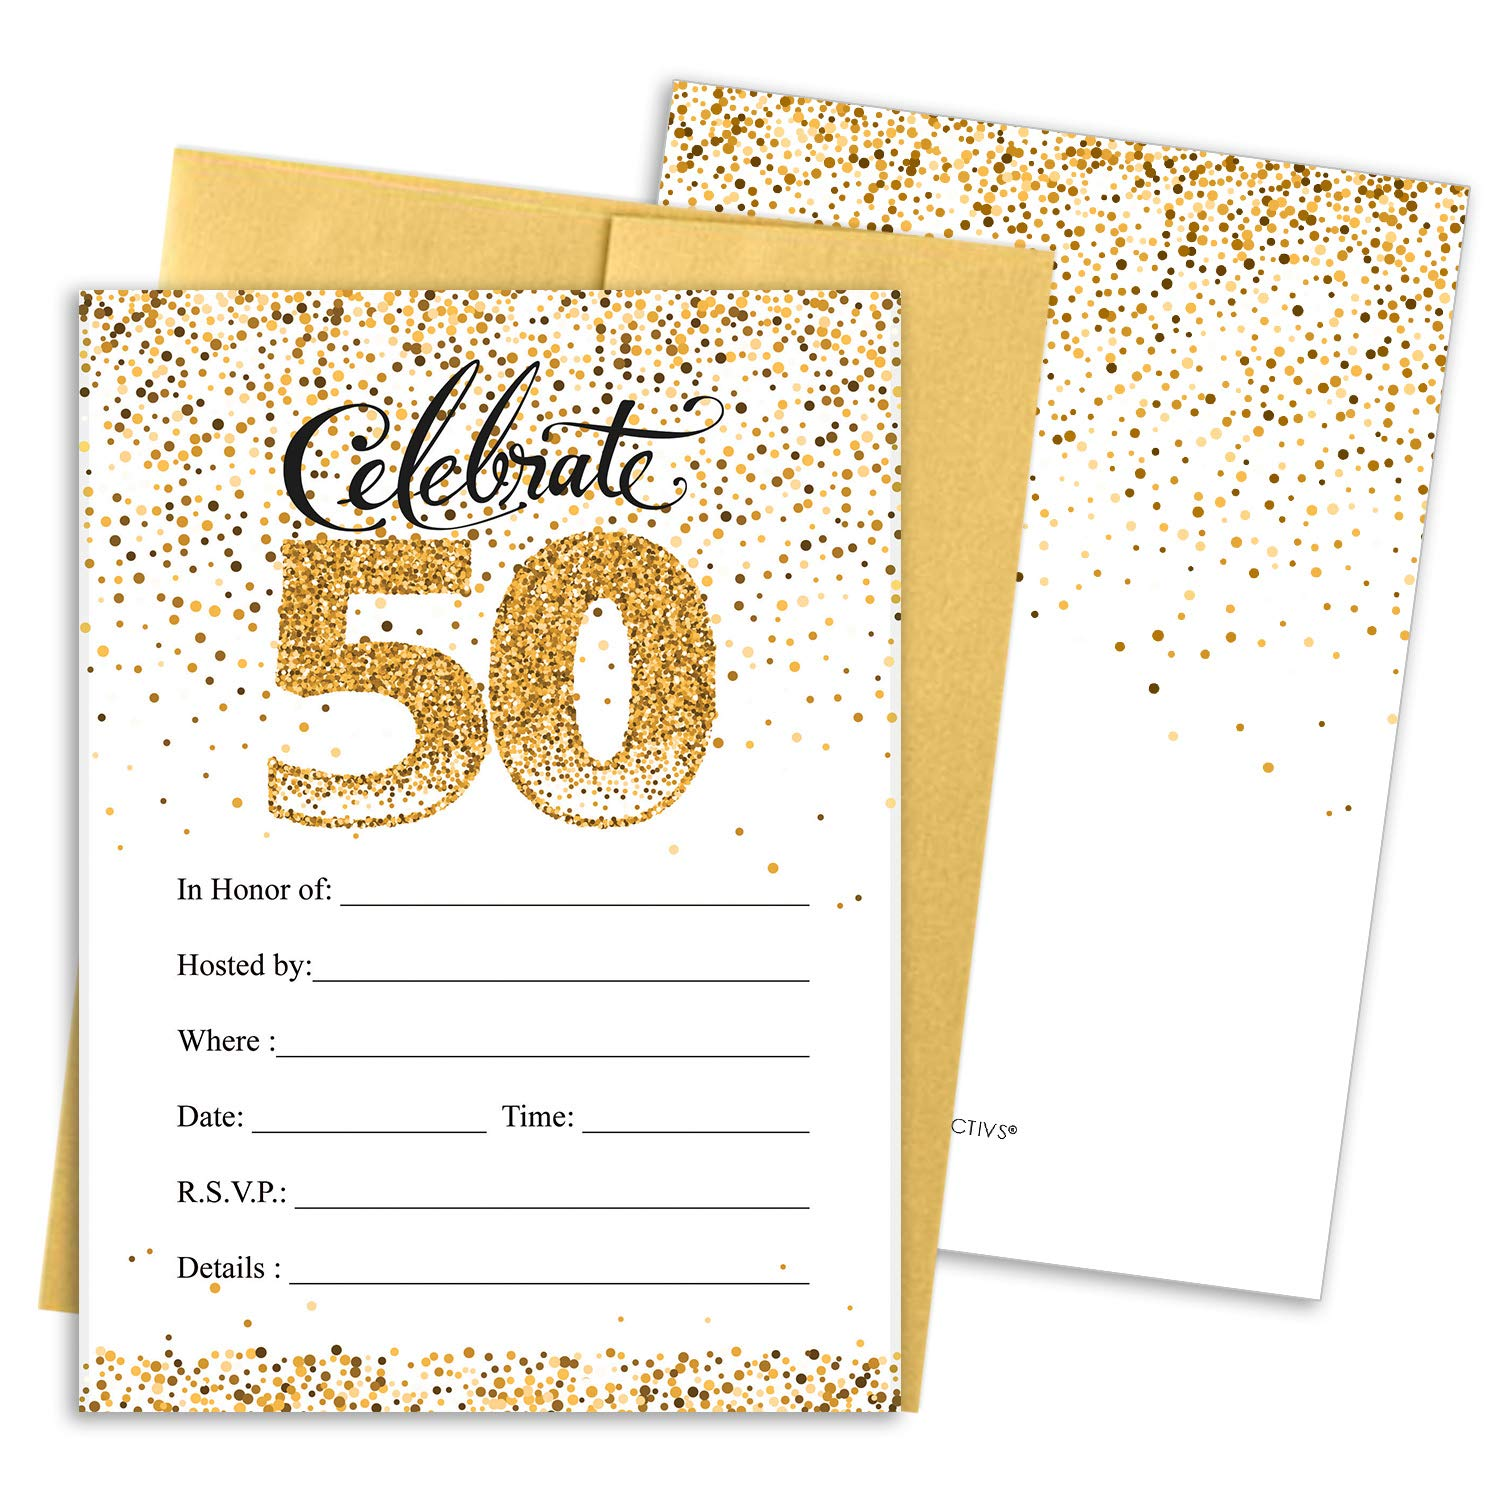 White And Gold 50th Birthday Party Invitations 10 Cards With Envelopes